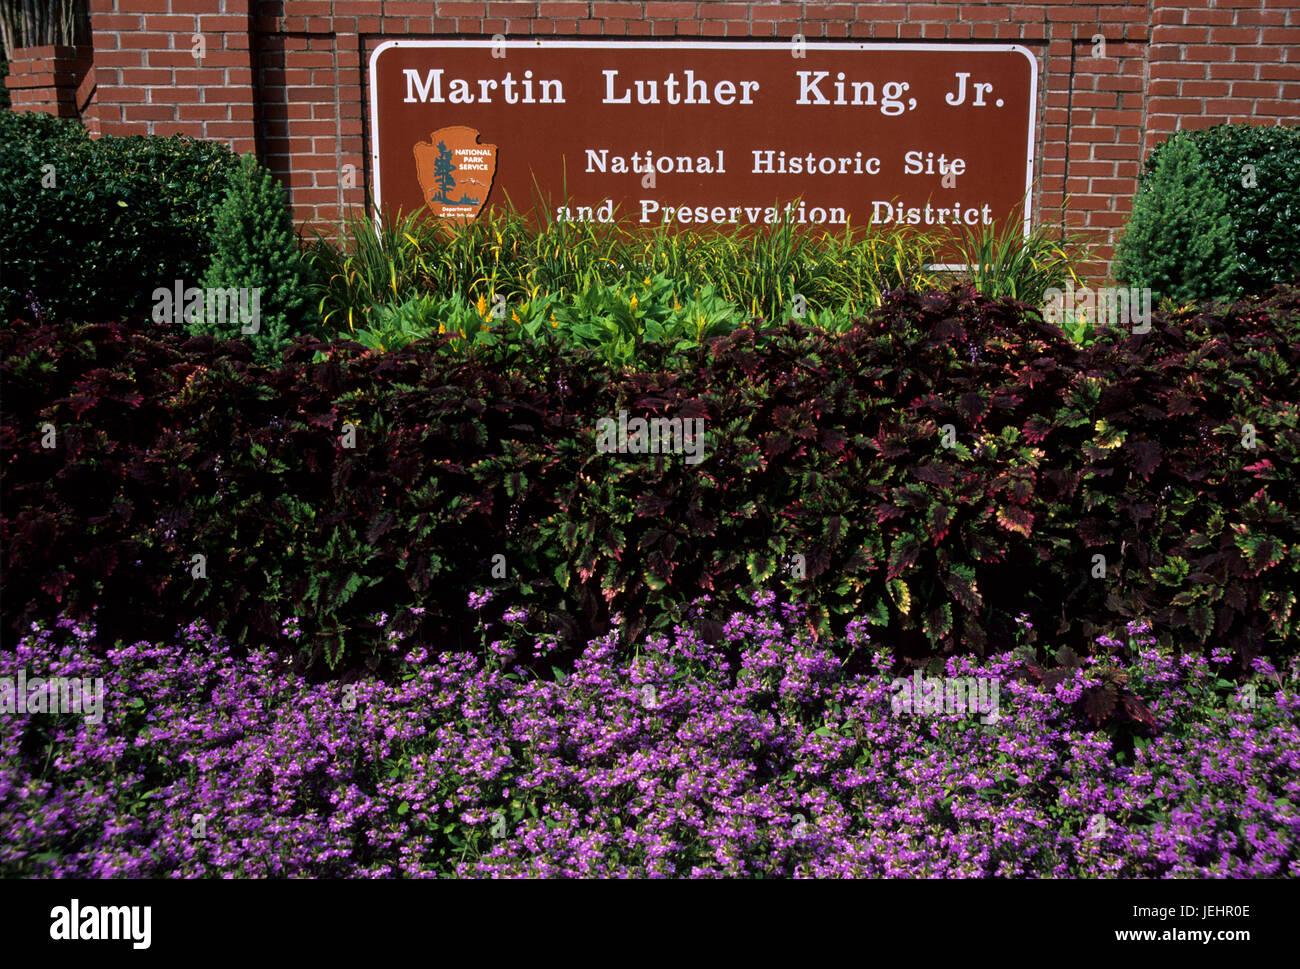 Entrance sign, Martin Luther King Jr. National Historic Site, Atlanta, Georgia - Stock Image